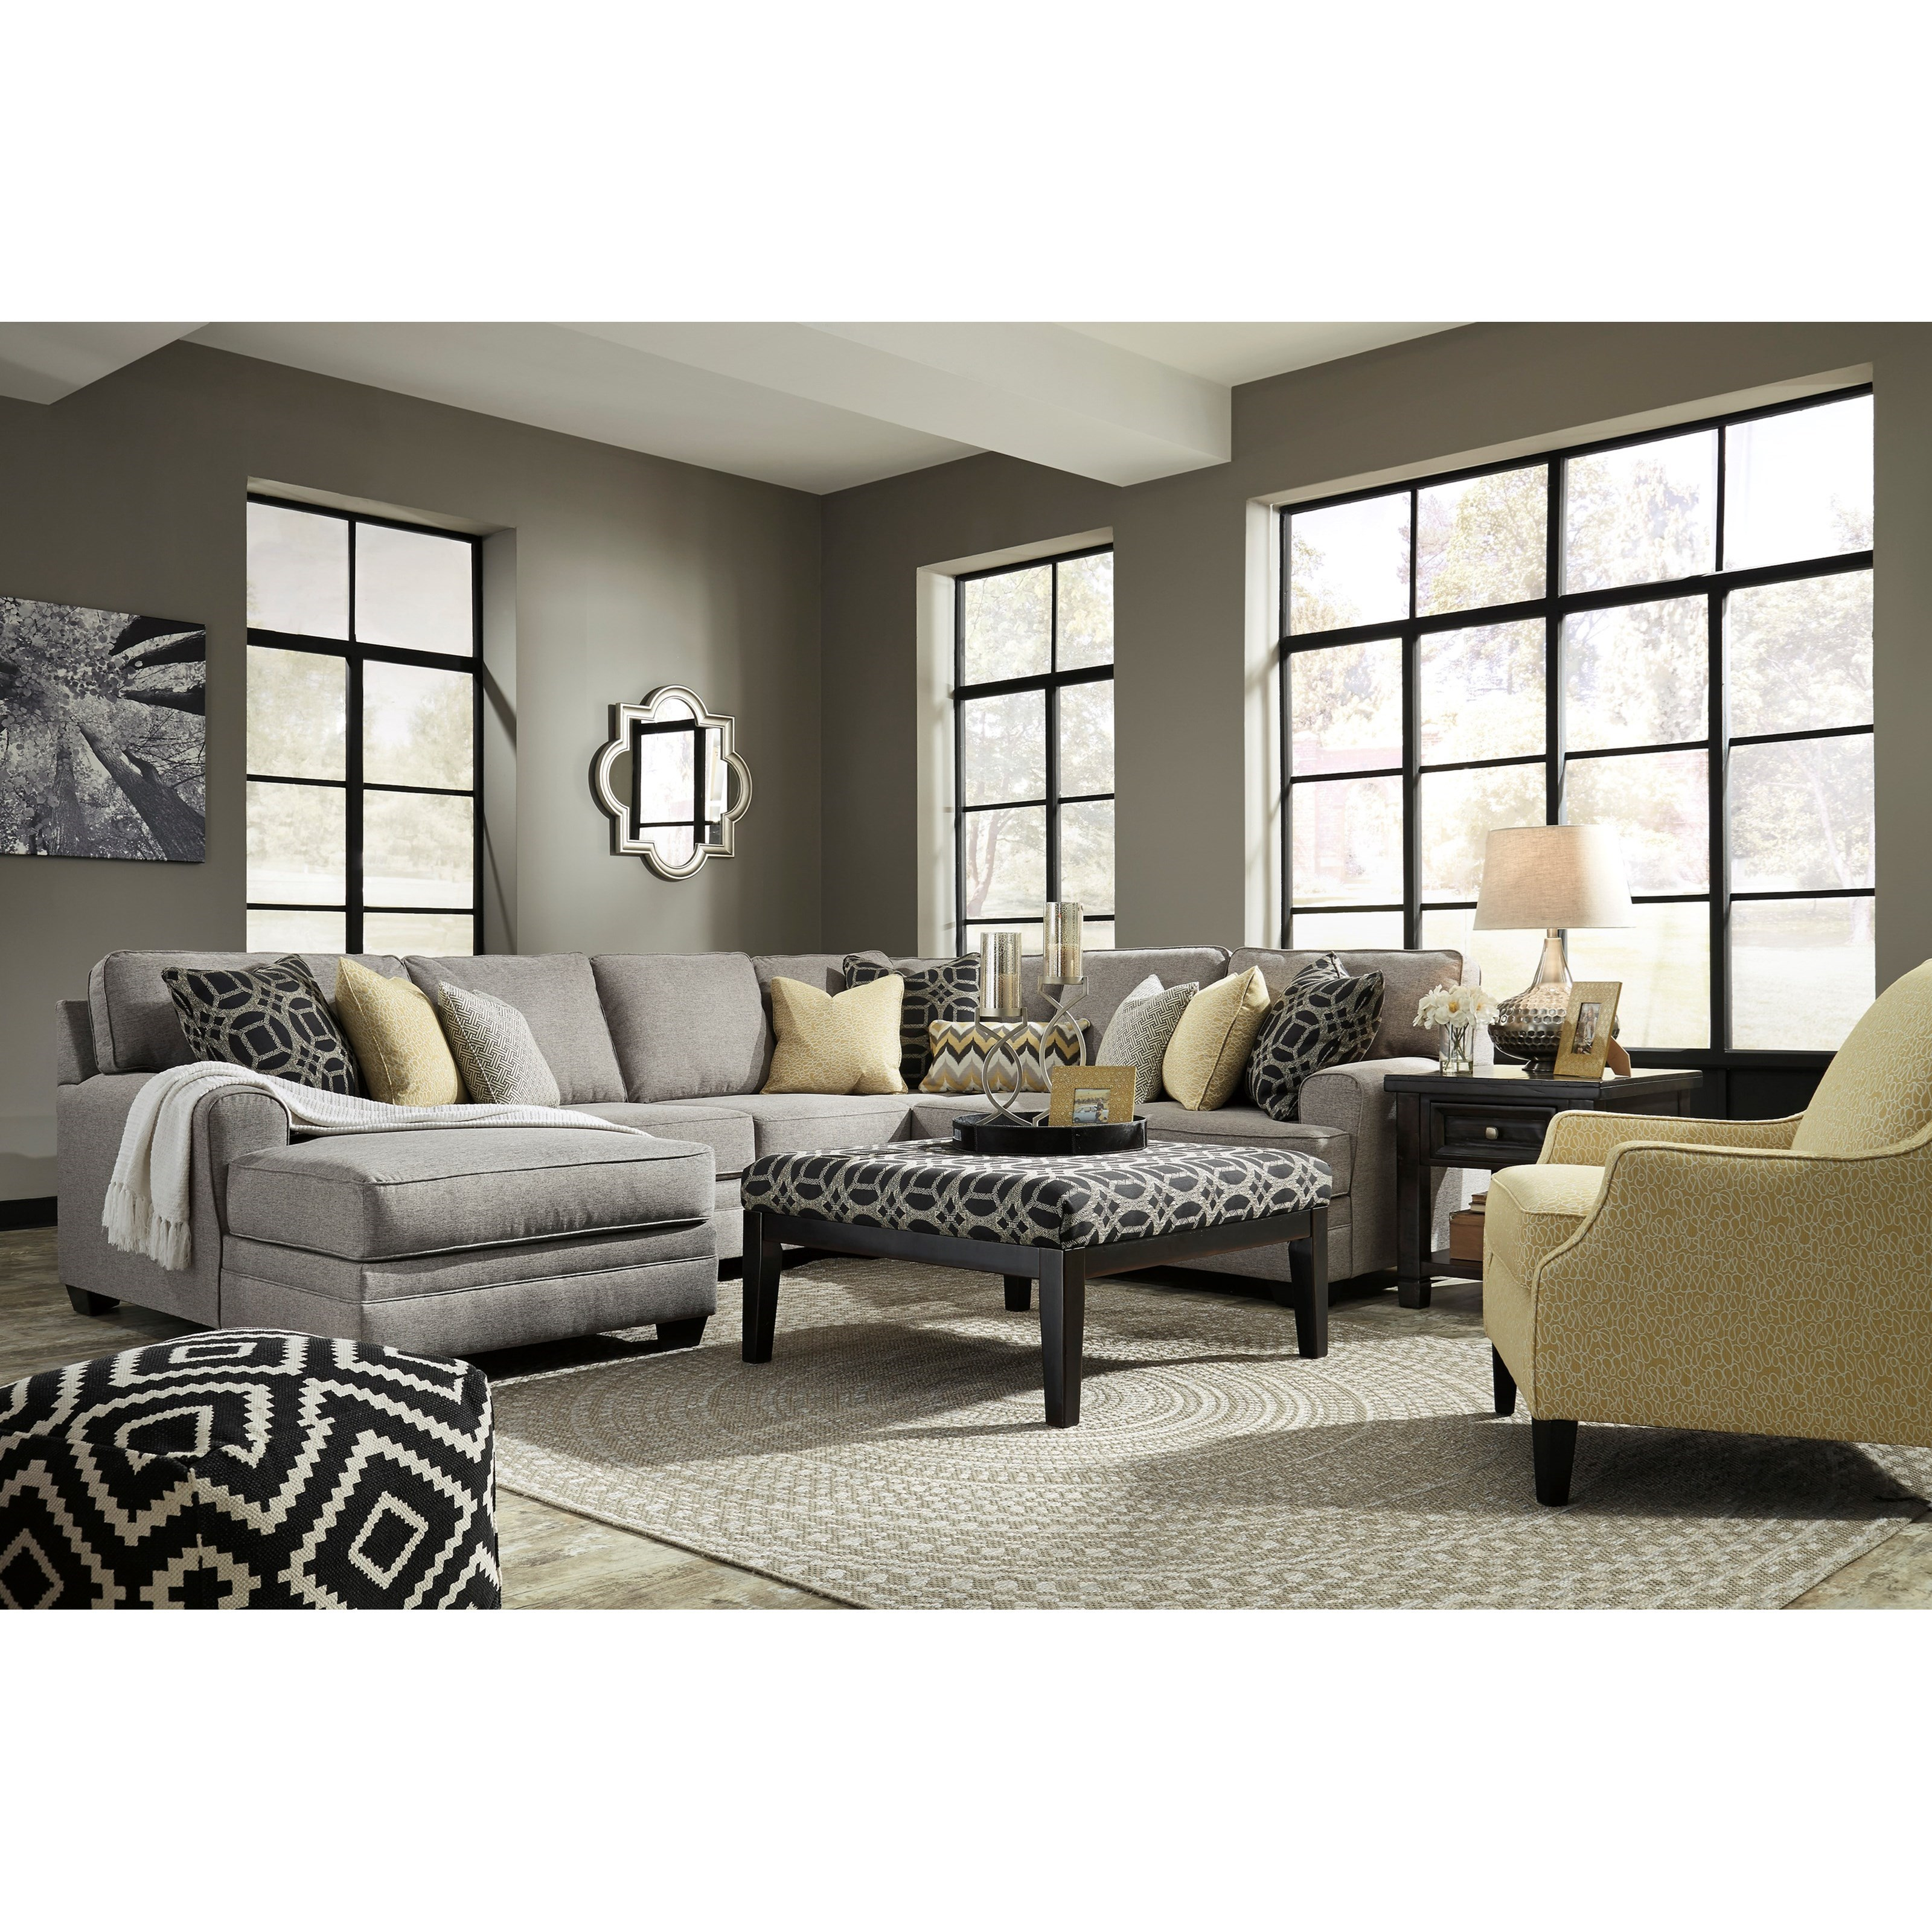 Benchcraft Cresson Stationary Living Room Group - Item Number: 54907 Living Room Group 2